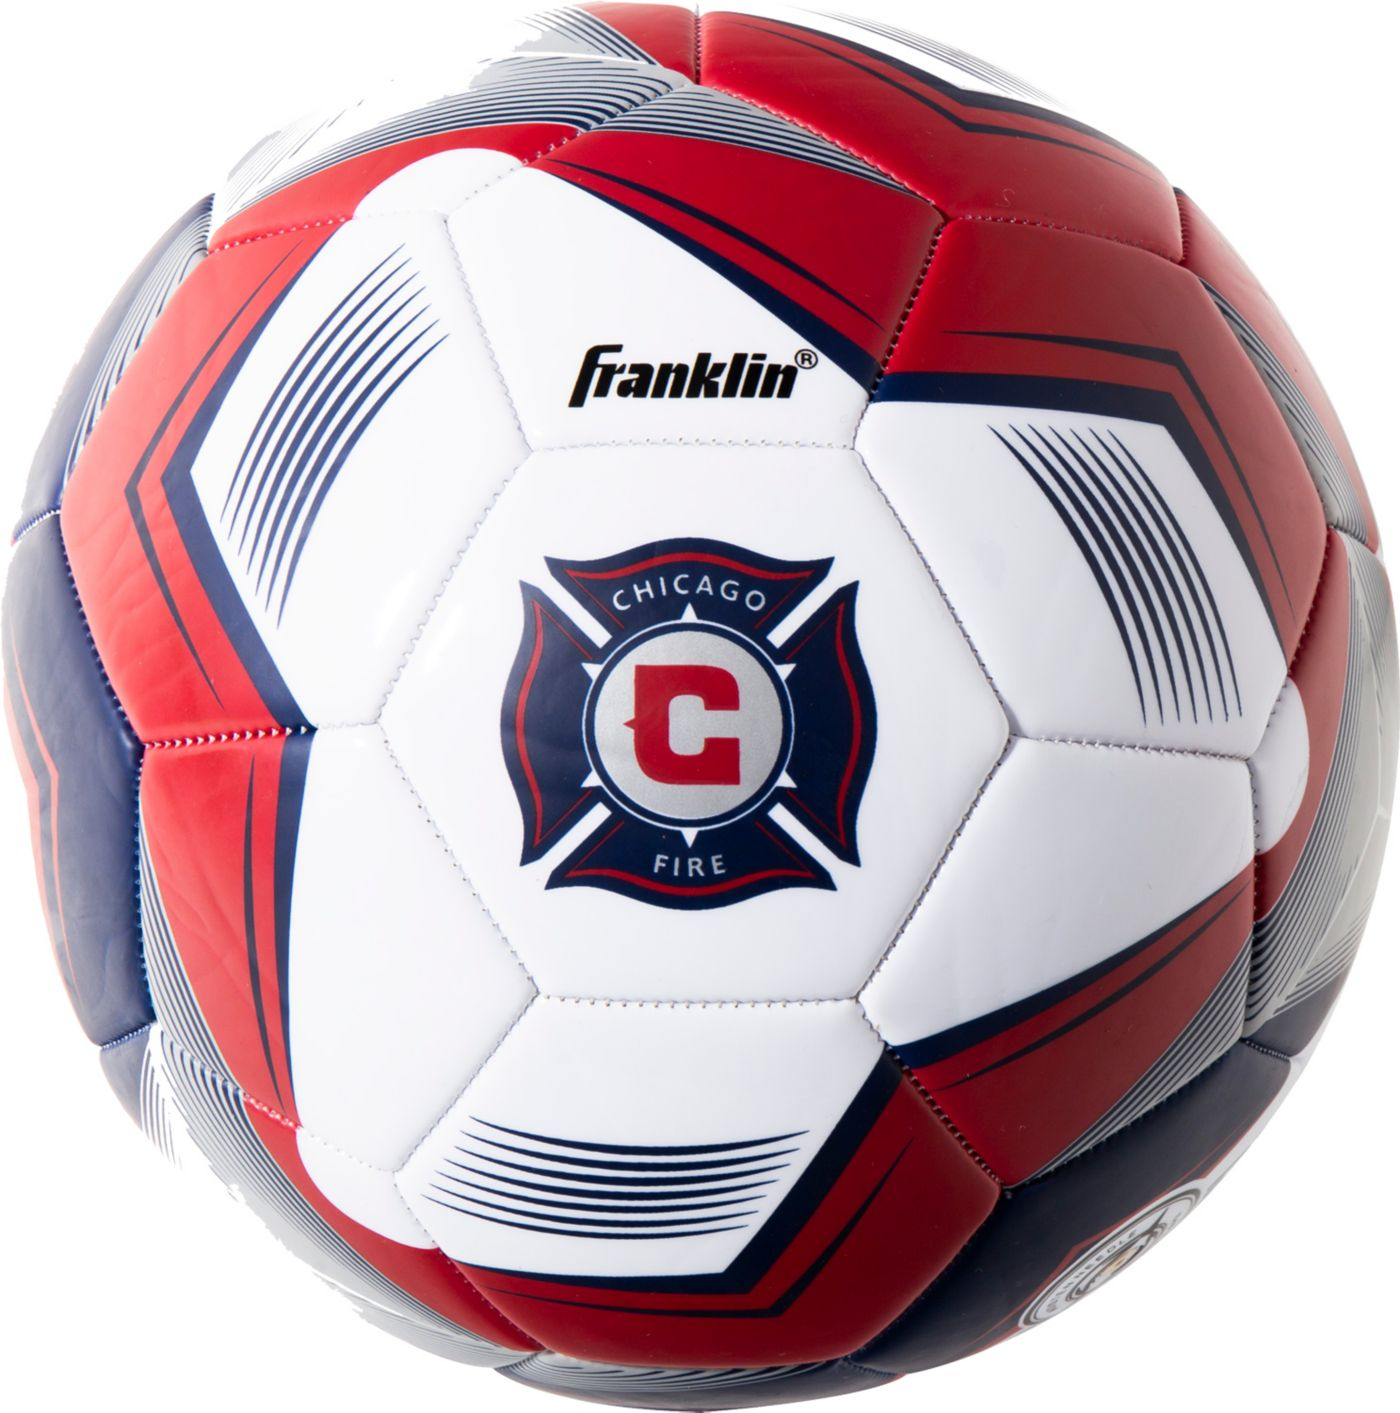 Franklin Chicago Fire Size 1 Soccer Ball